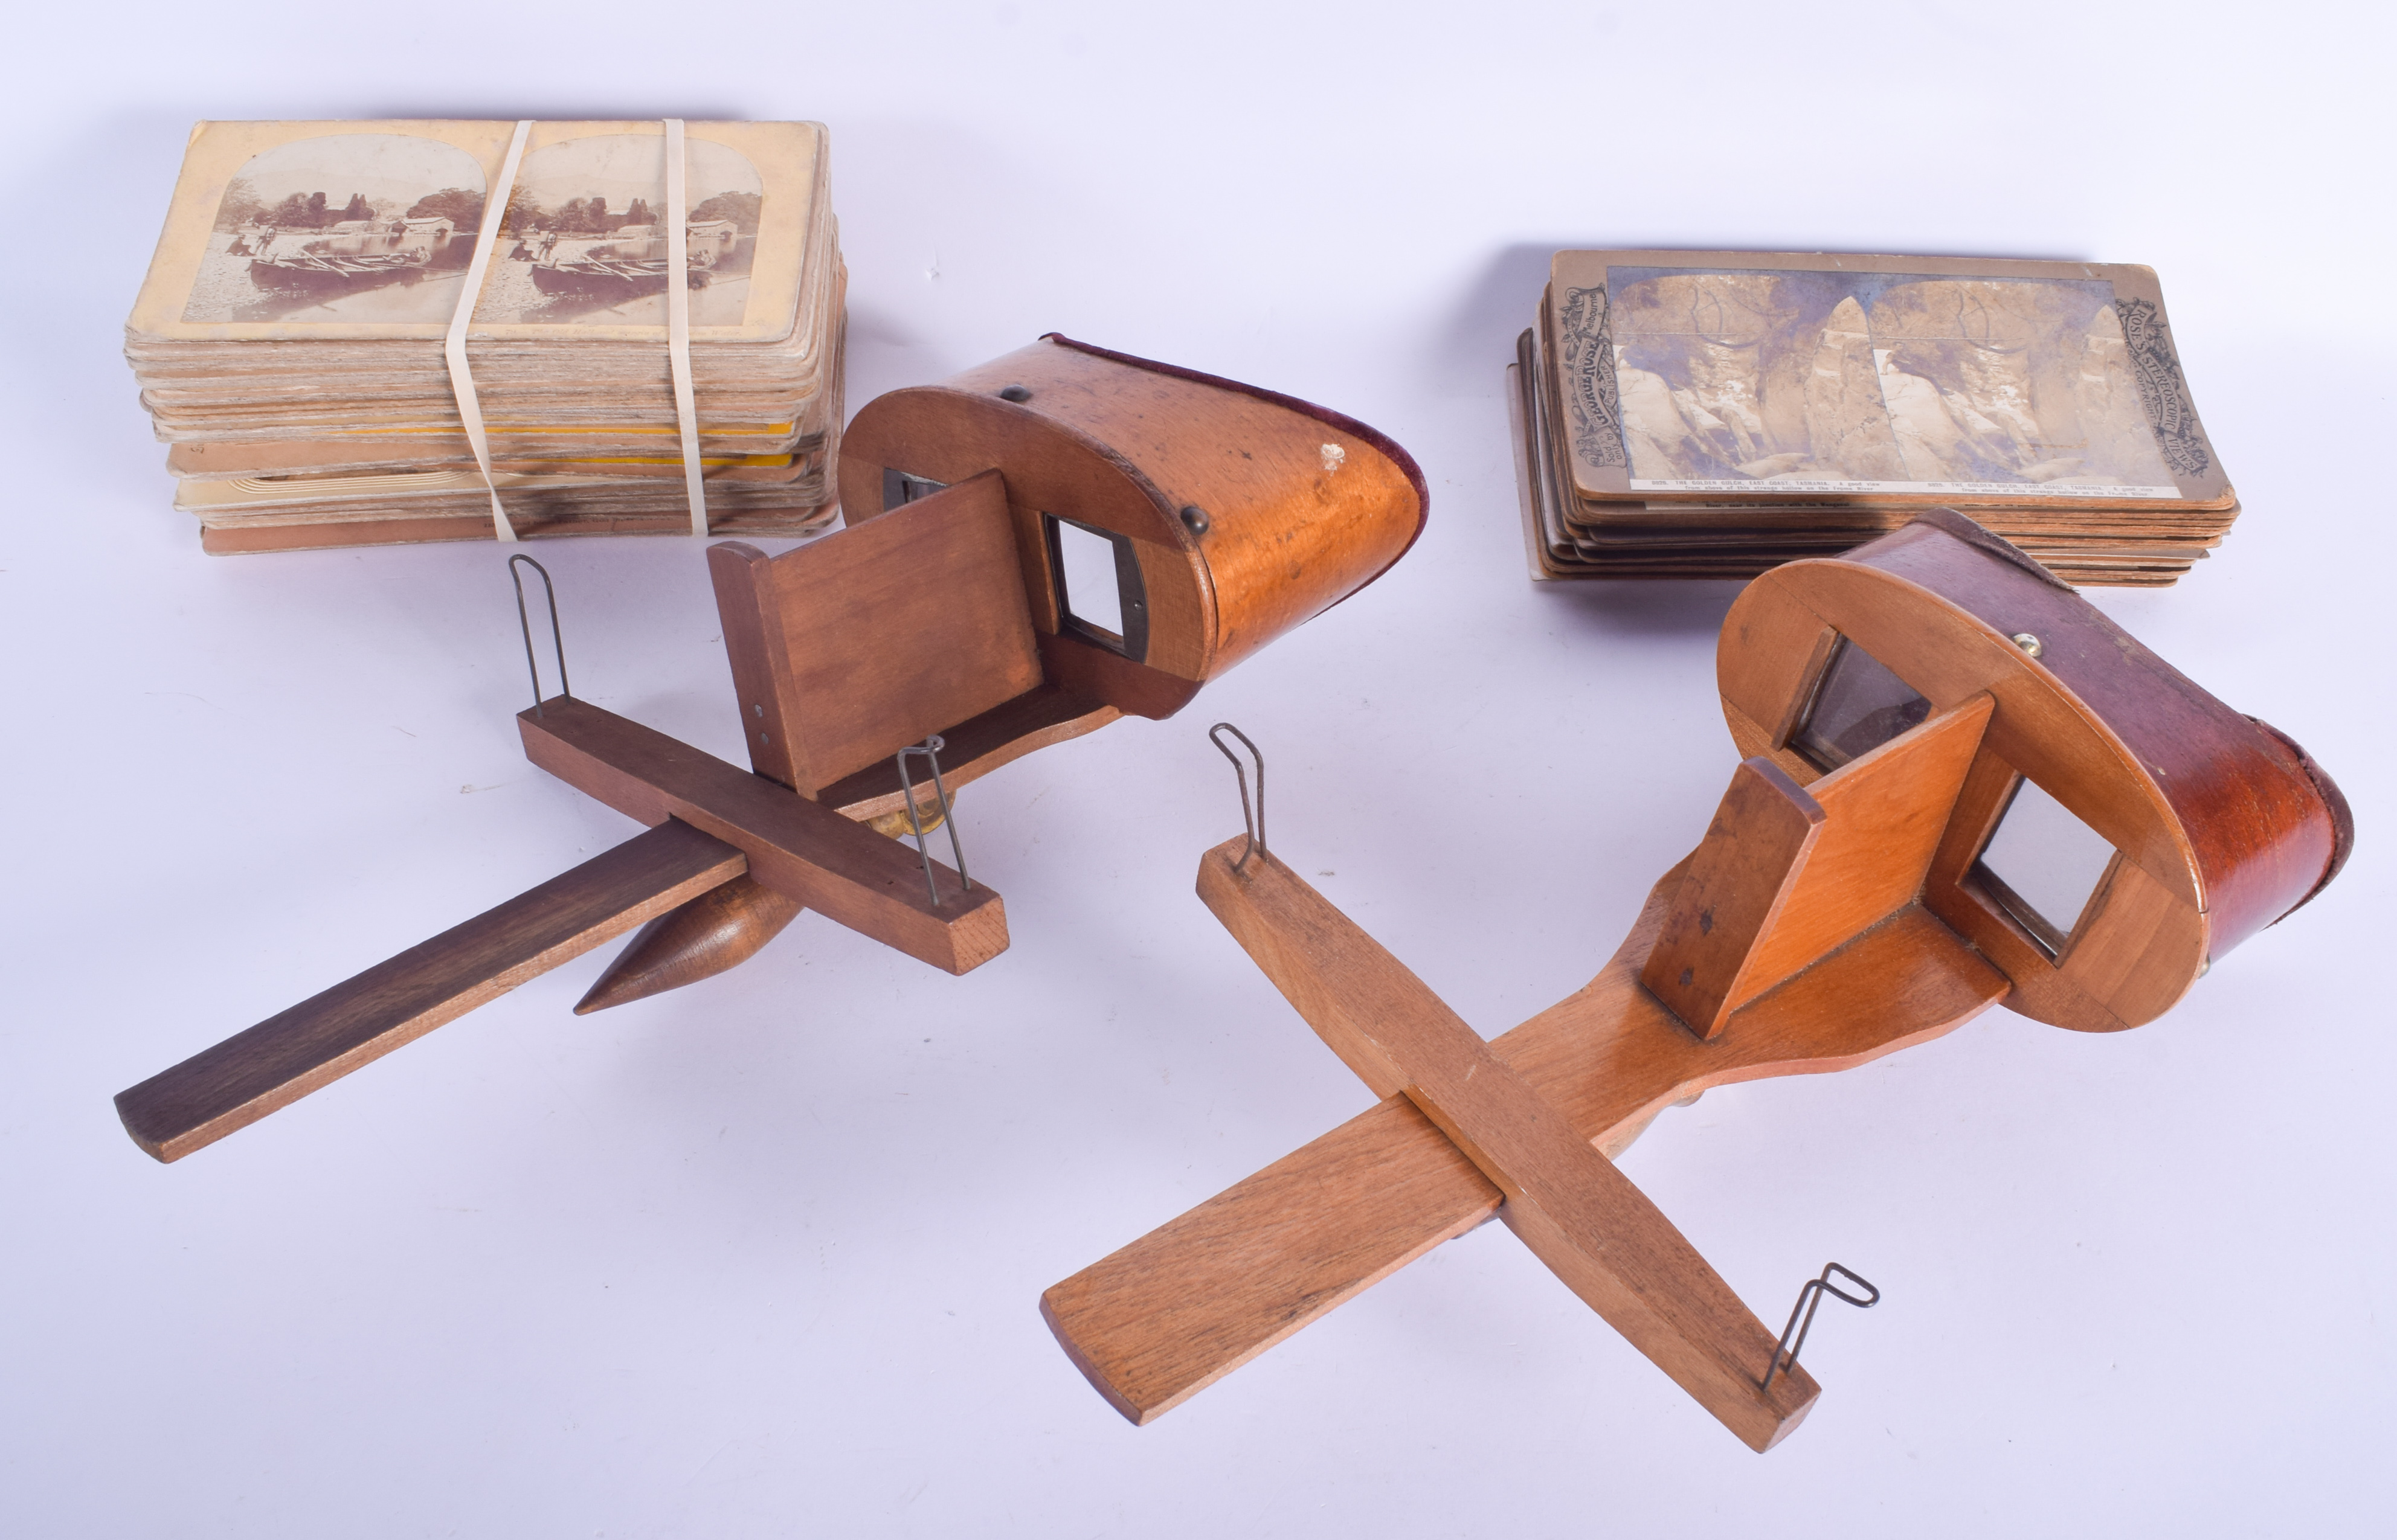 TWO VINTAGE STEREOSCOPE VIEWERS together with slides. (qty)